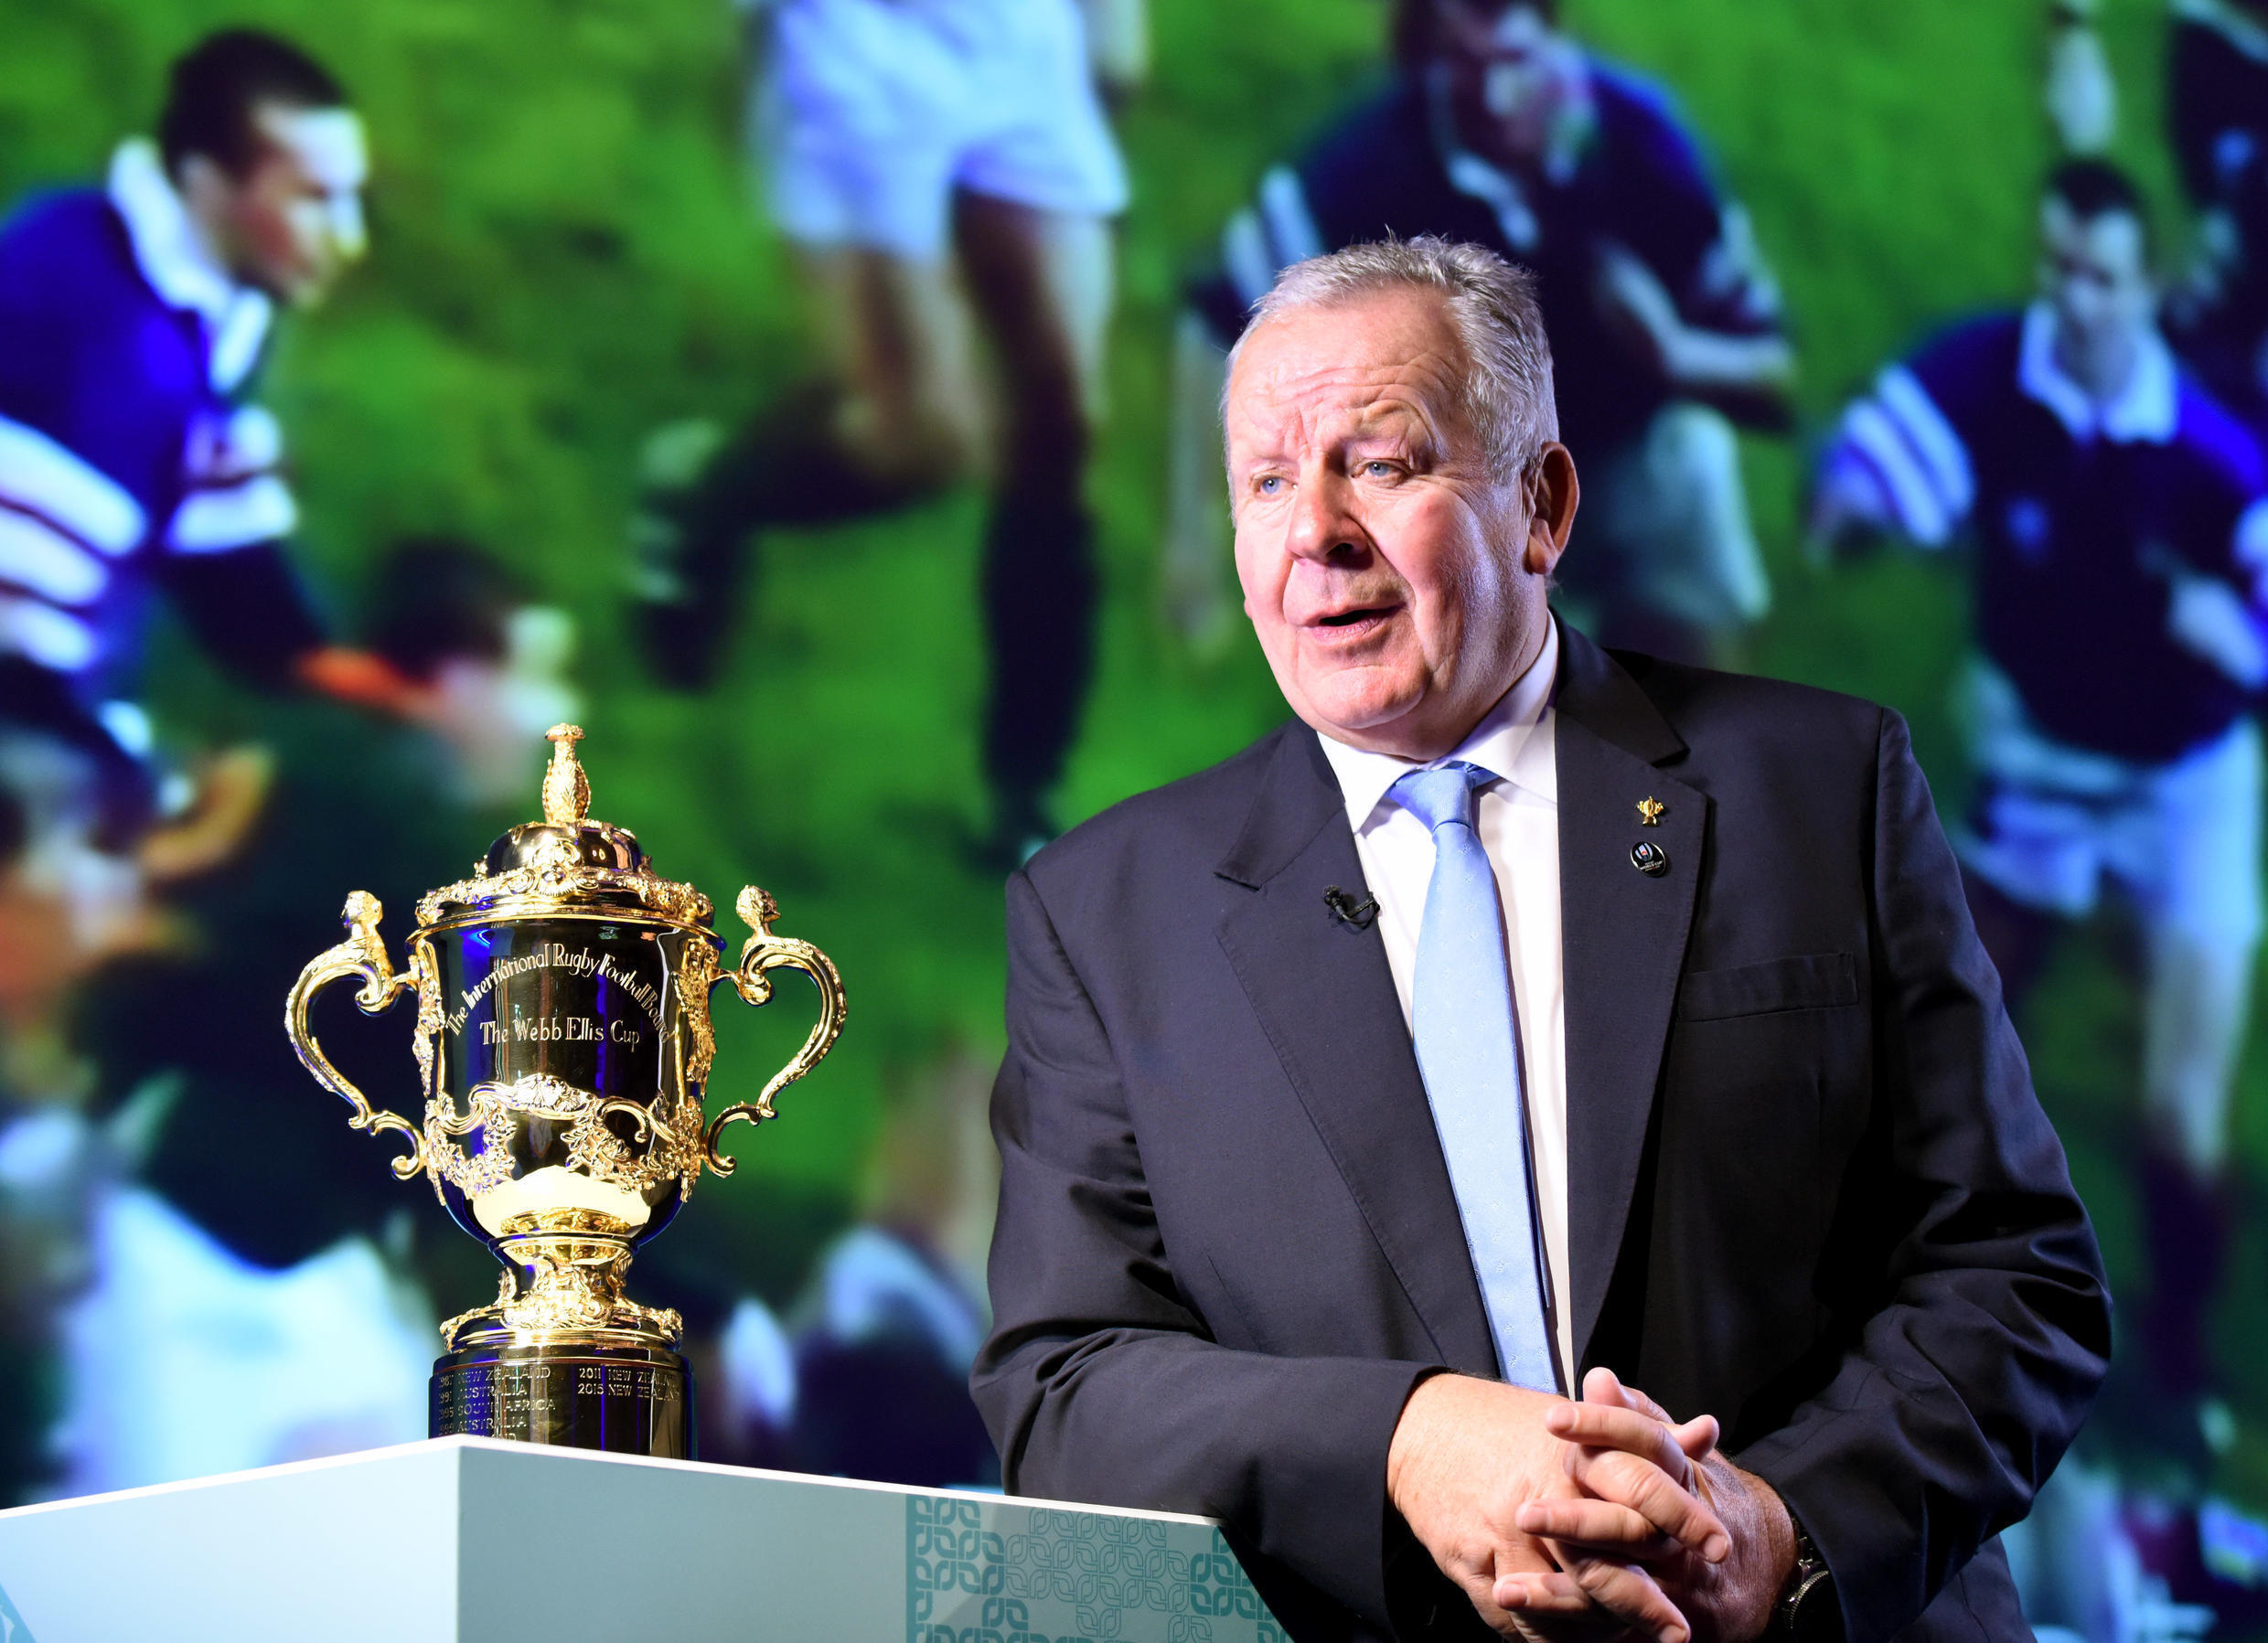 Bill Beaumont pictured with the Web Ellis trophy at a news conference in 2017.